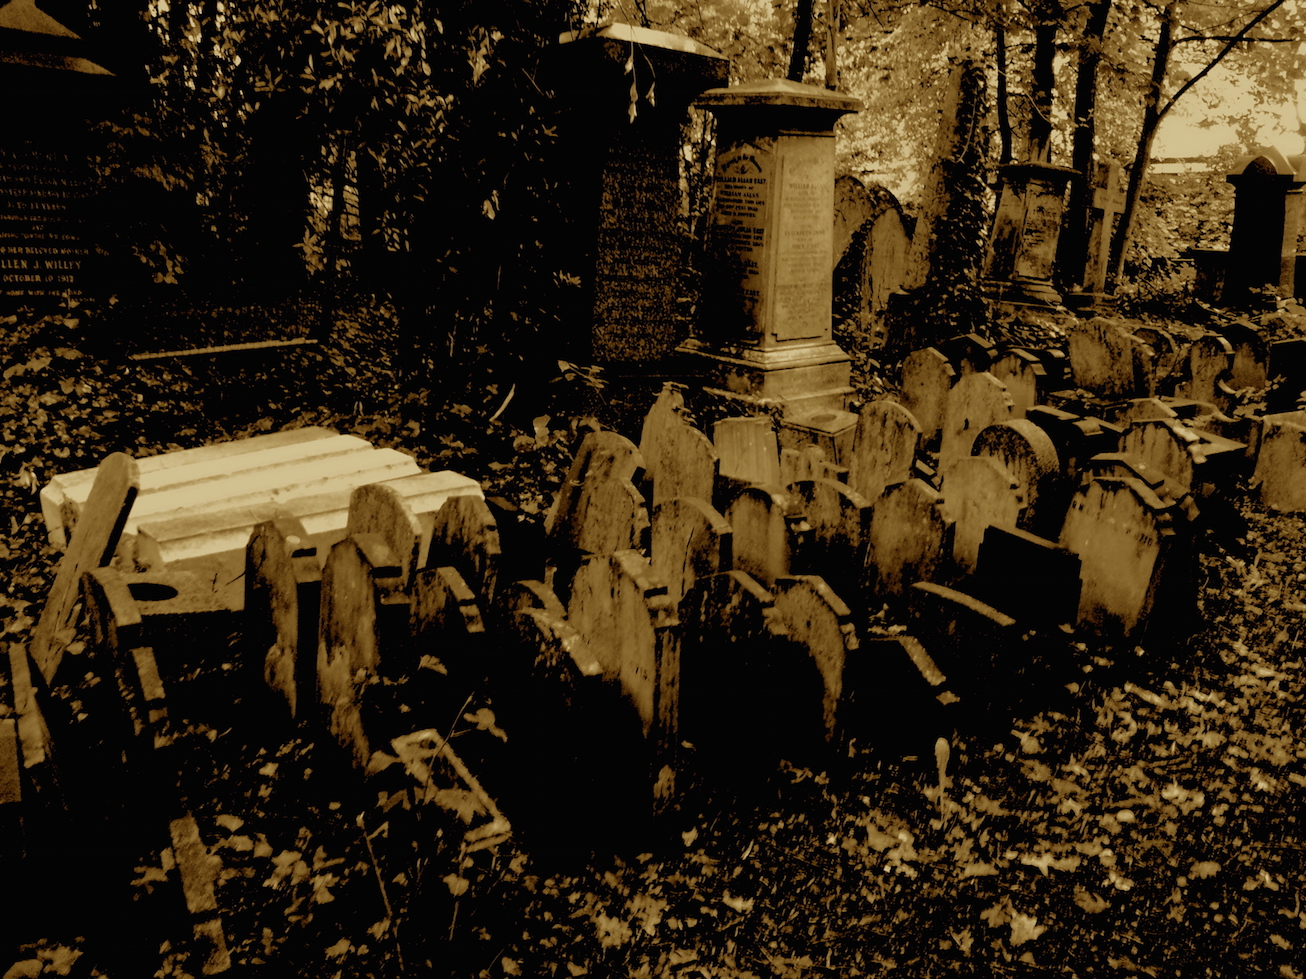 Abney Park paupers graves